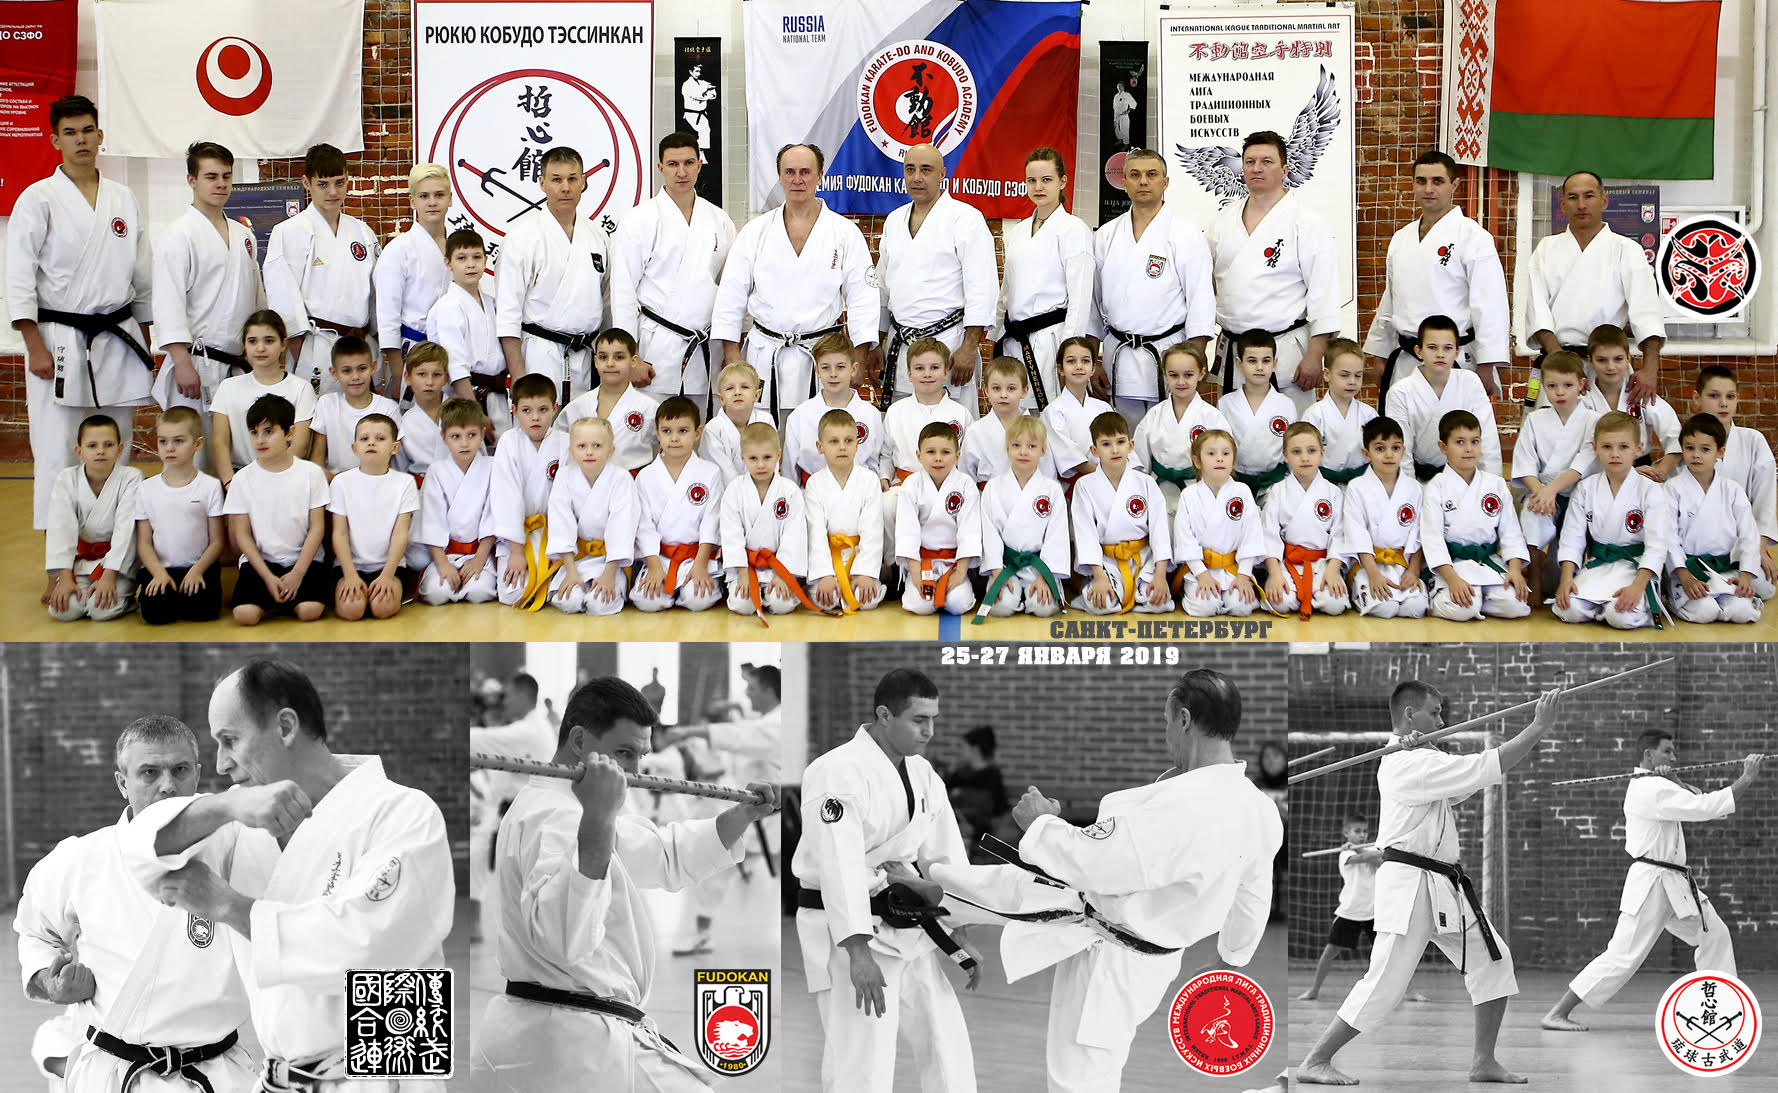 The international seminar on Karate Fudokan and Ryûkyû Kobudô Tessinkan  (St. Petersburg)